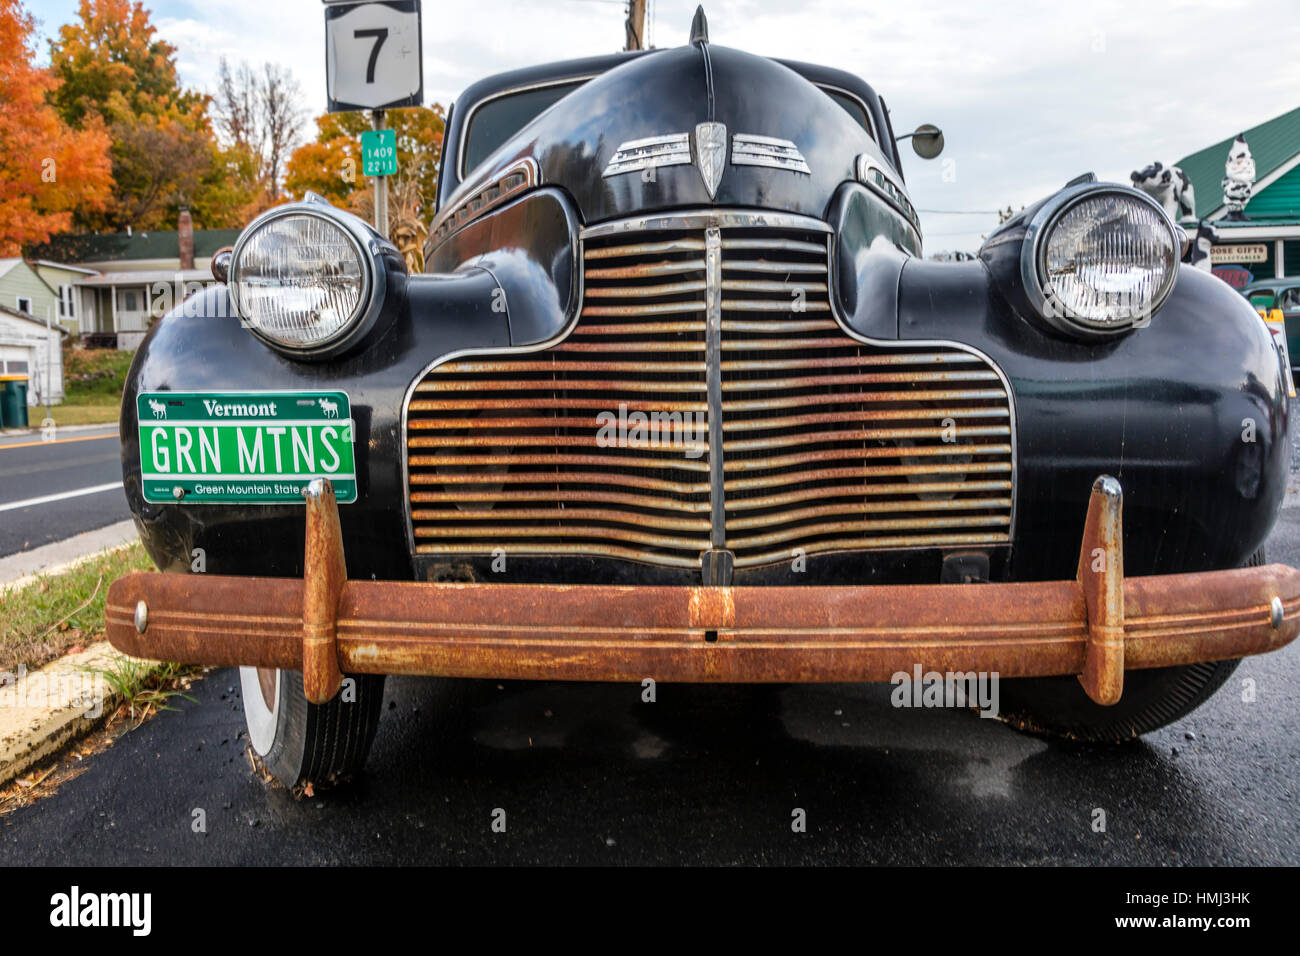 Close up view of antique car with Vermont License Plates reading  Green Mountains  New England October 16 2016 & Close up view of antique car with Vermont License Plates reading ...